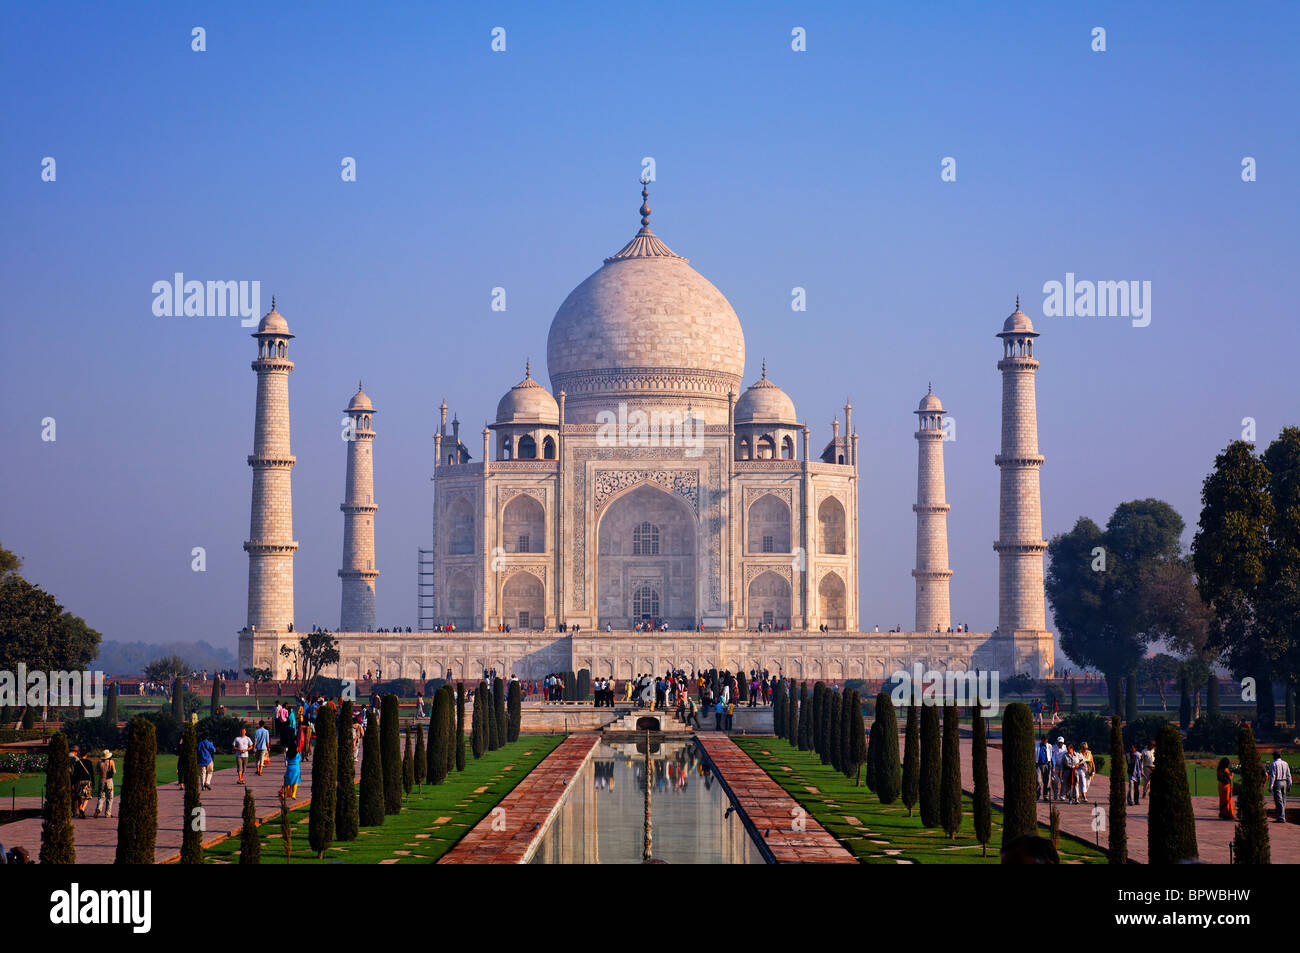 The Taj Mahal, Agra, Uttar Pradesh, India Stock Photo